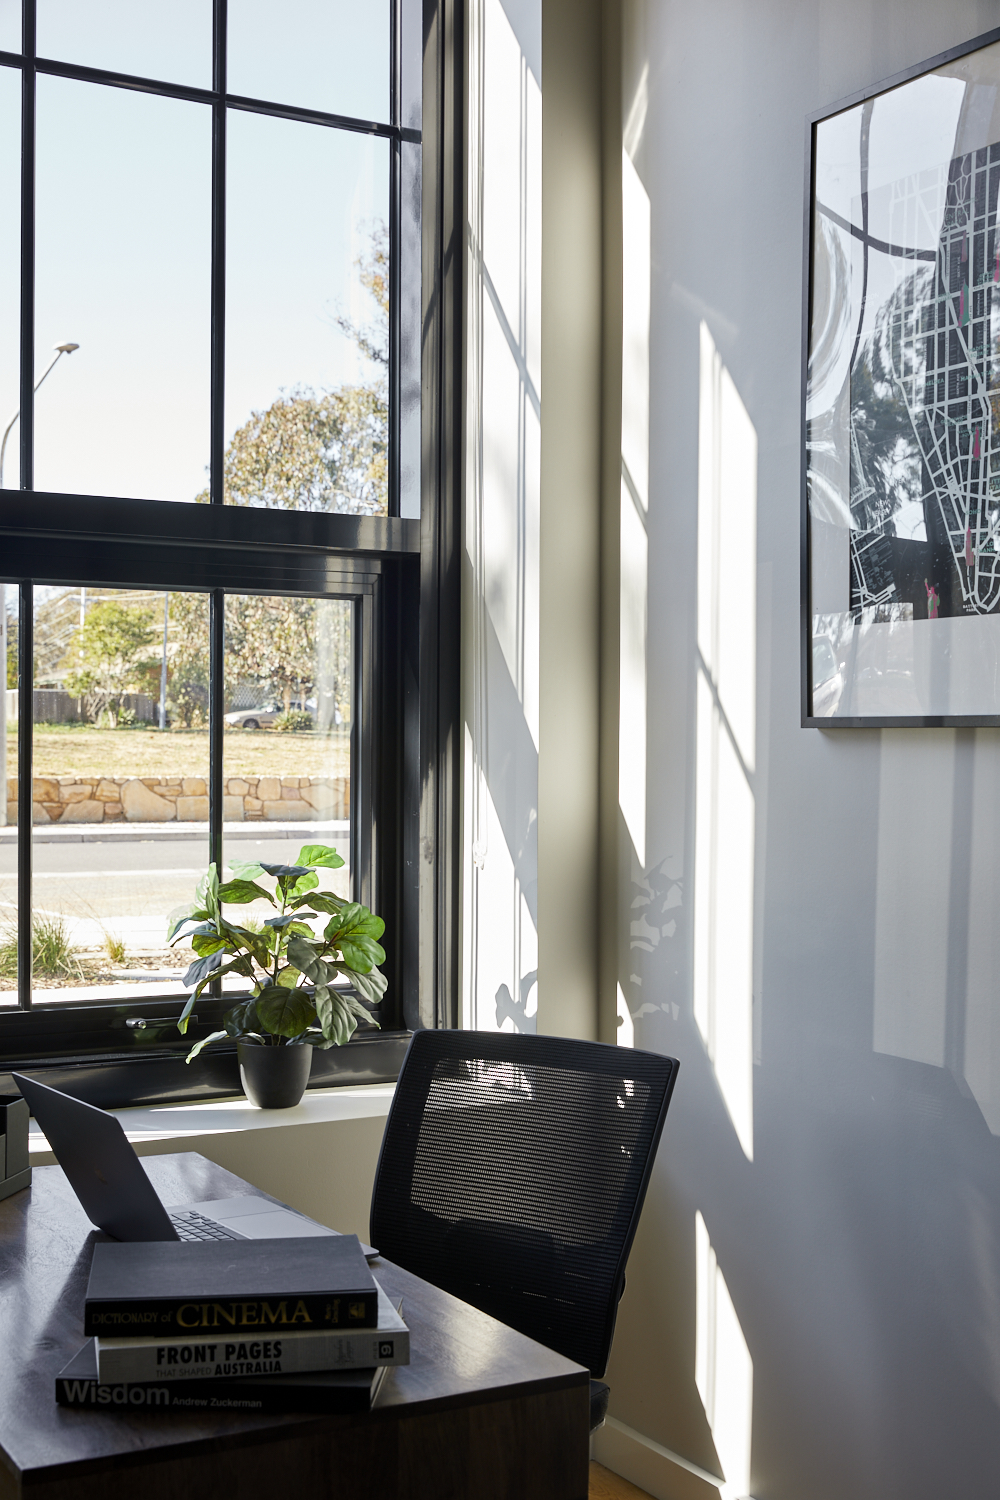 Woolshed at Kingsborough | Architecture Photography Canberra | Interior Photography Canberra - By Canberra Photographer